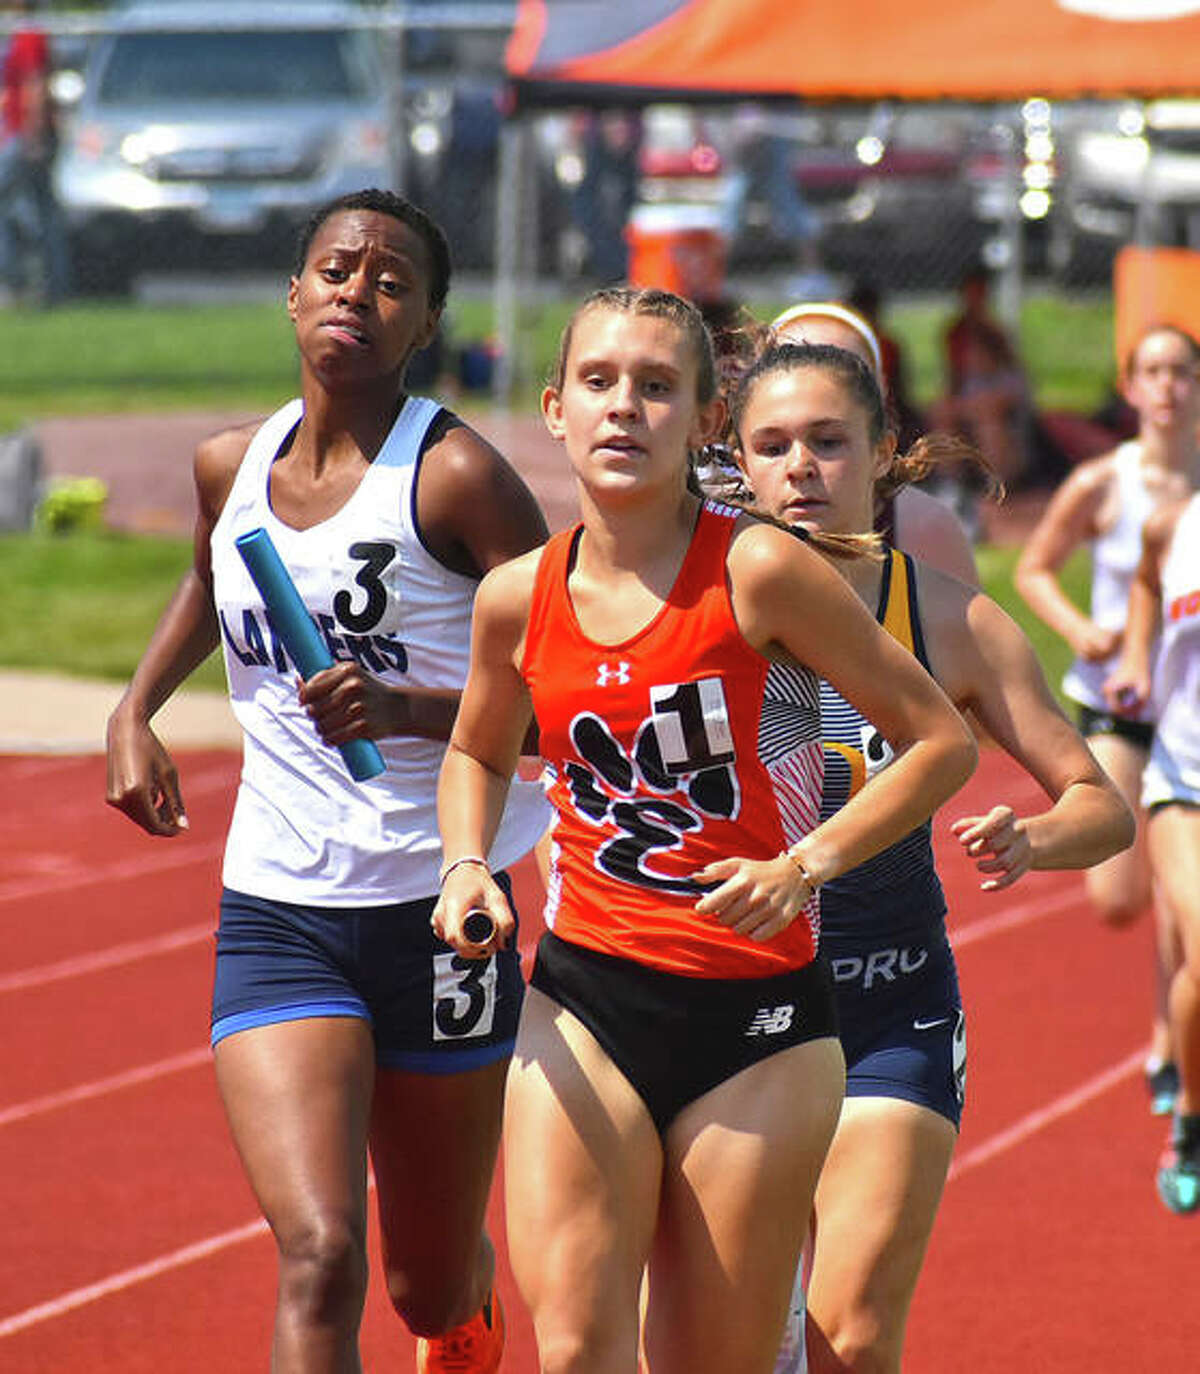 Edwardsville's Kaitlyn Loyet leads after the first lap of the 3,200-meter relay at the Class 3A O'Fallon Sectional on Thursday.